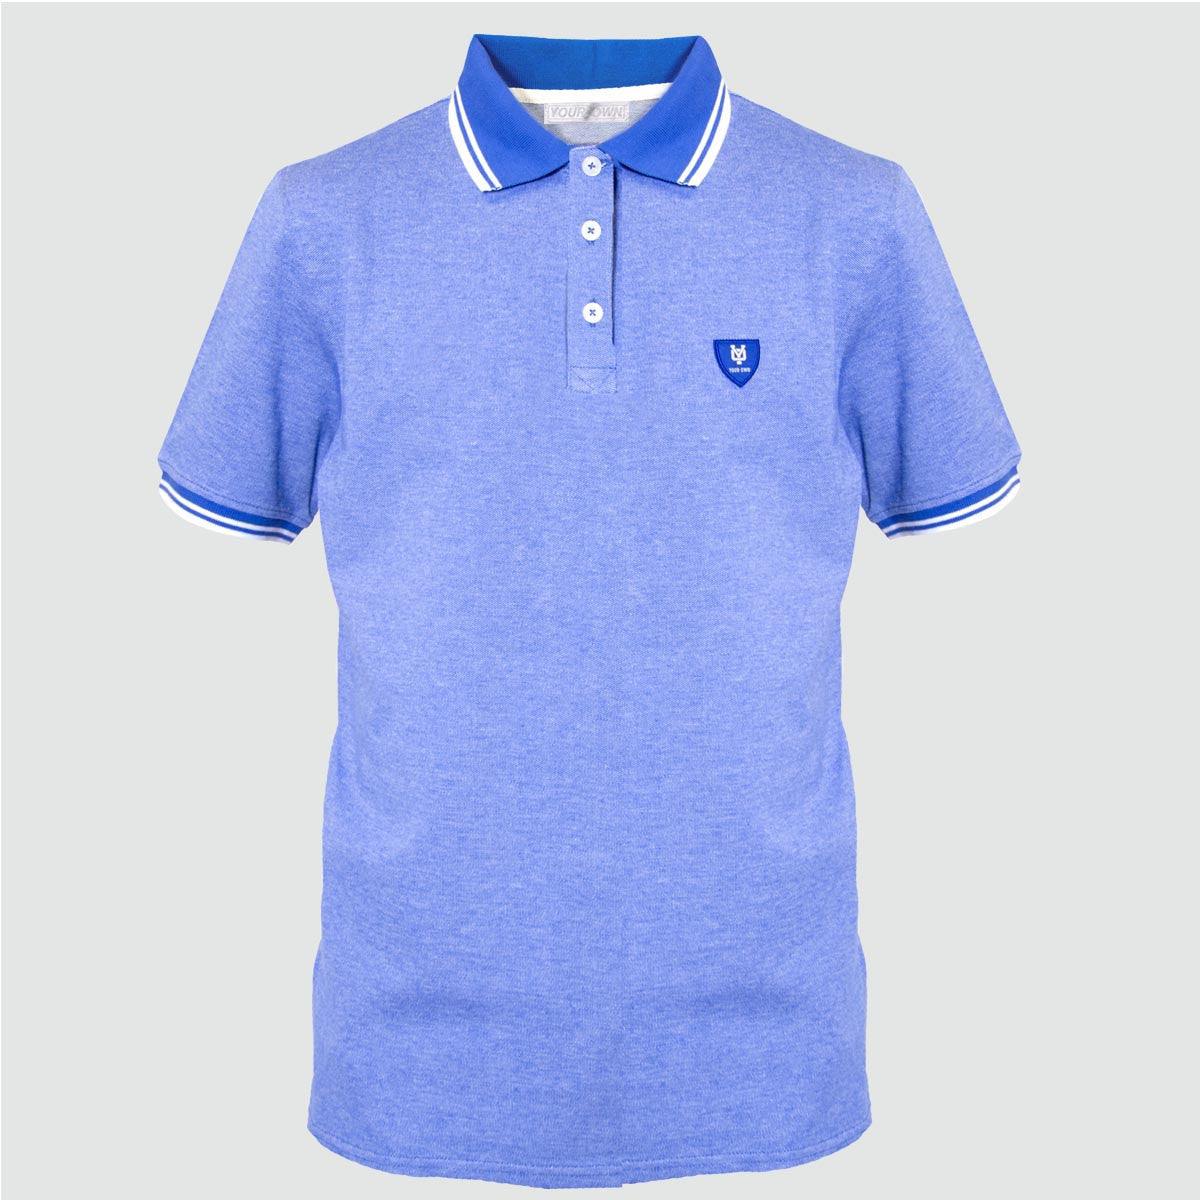 YO 'RIO' Polo Shirt Blue Marl